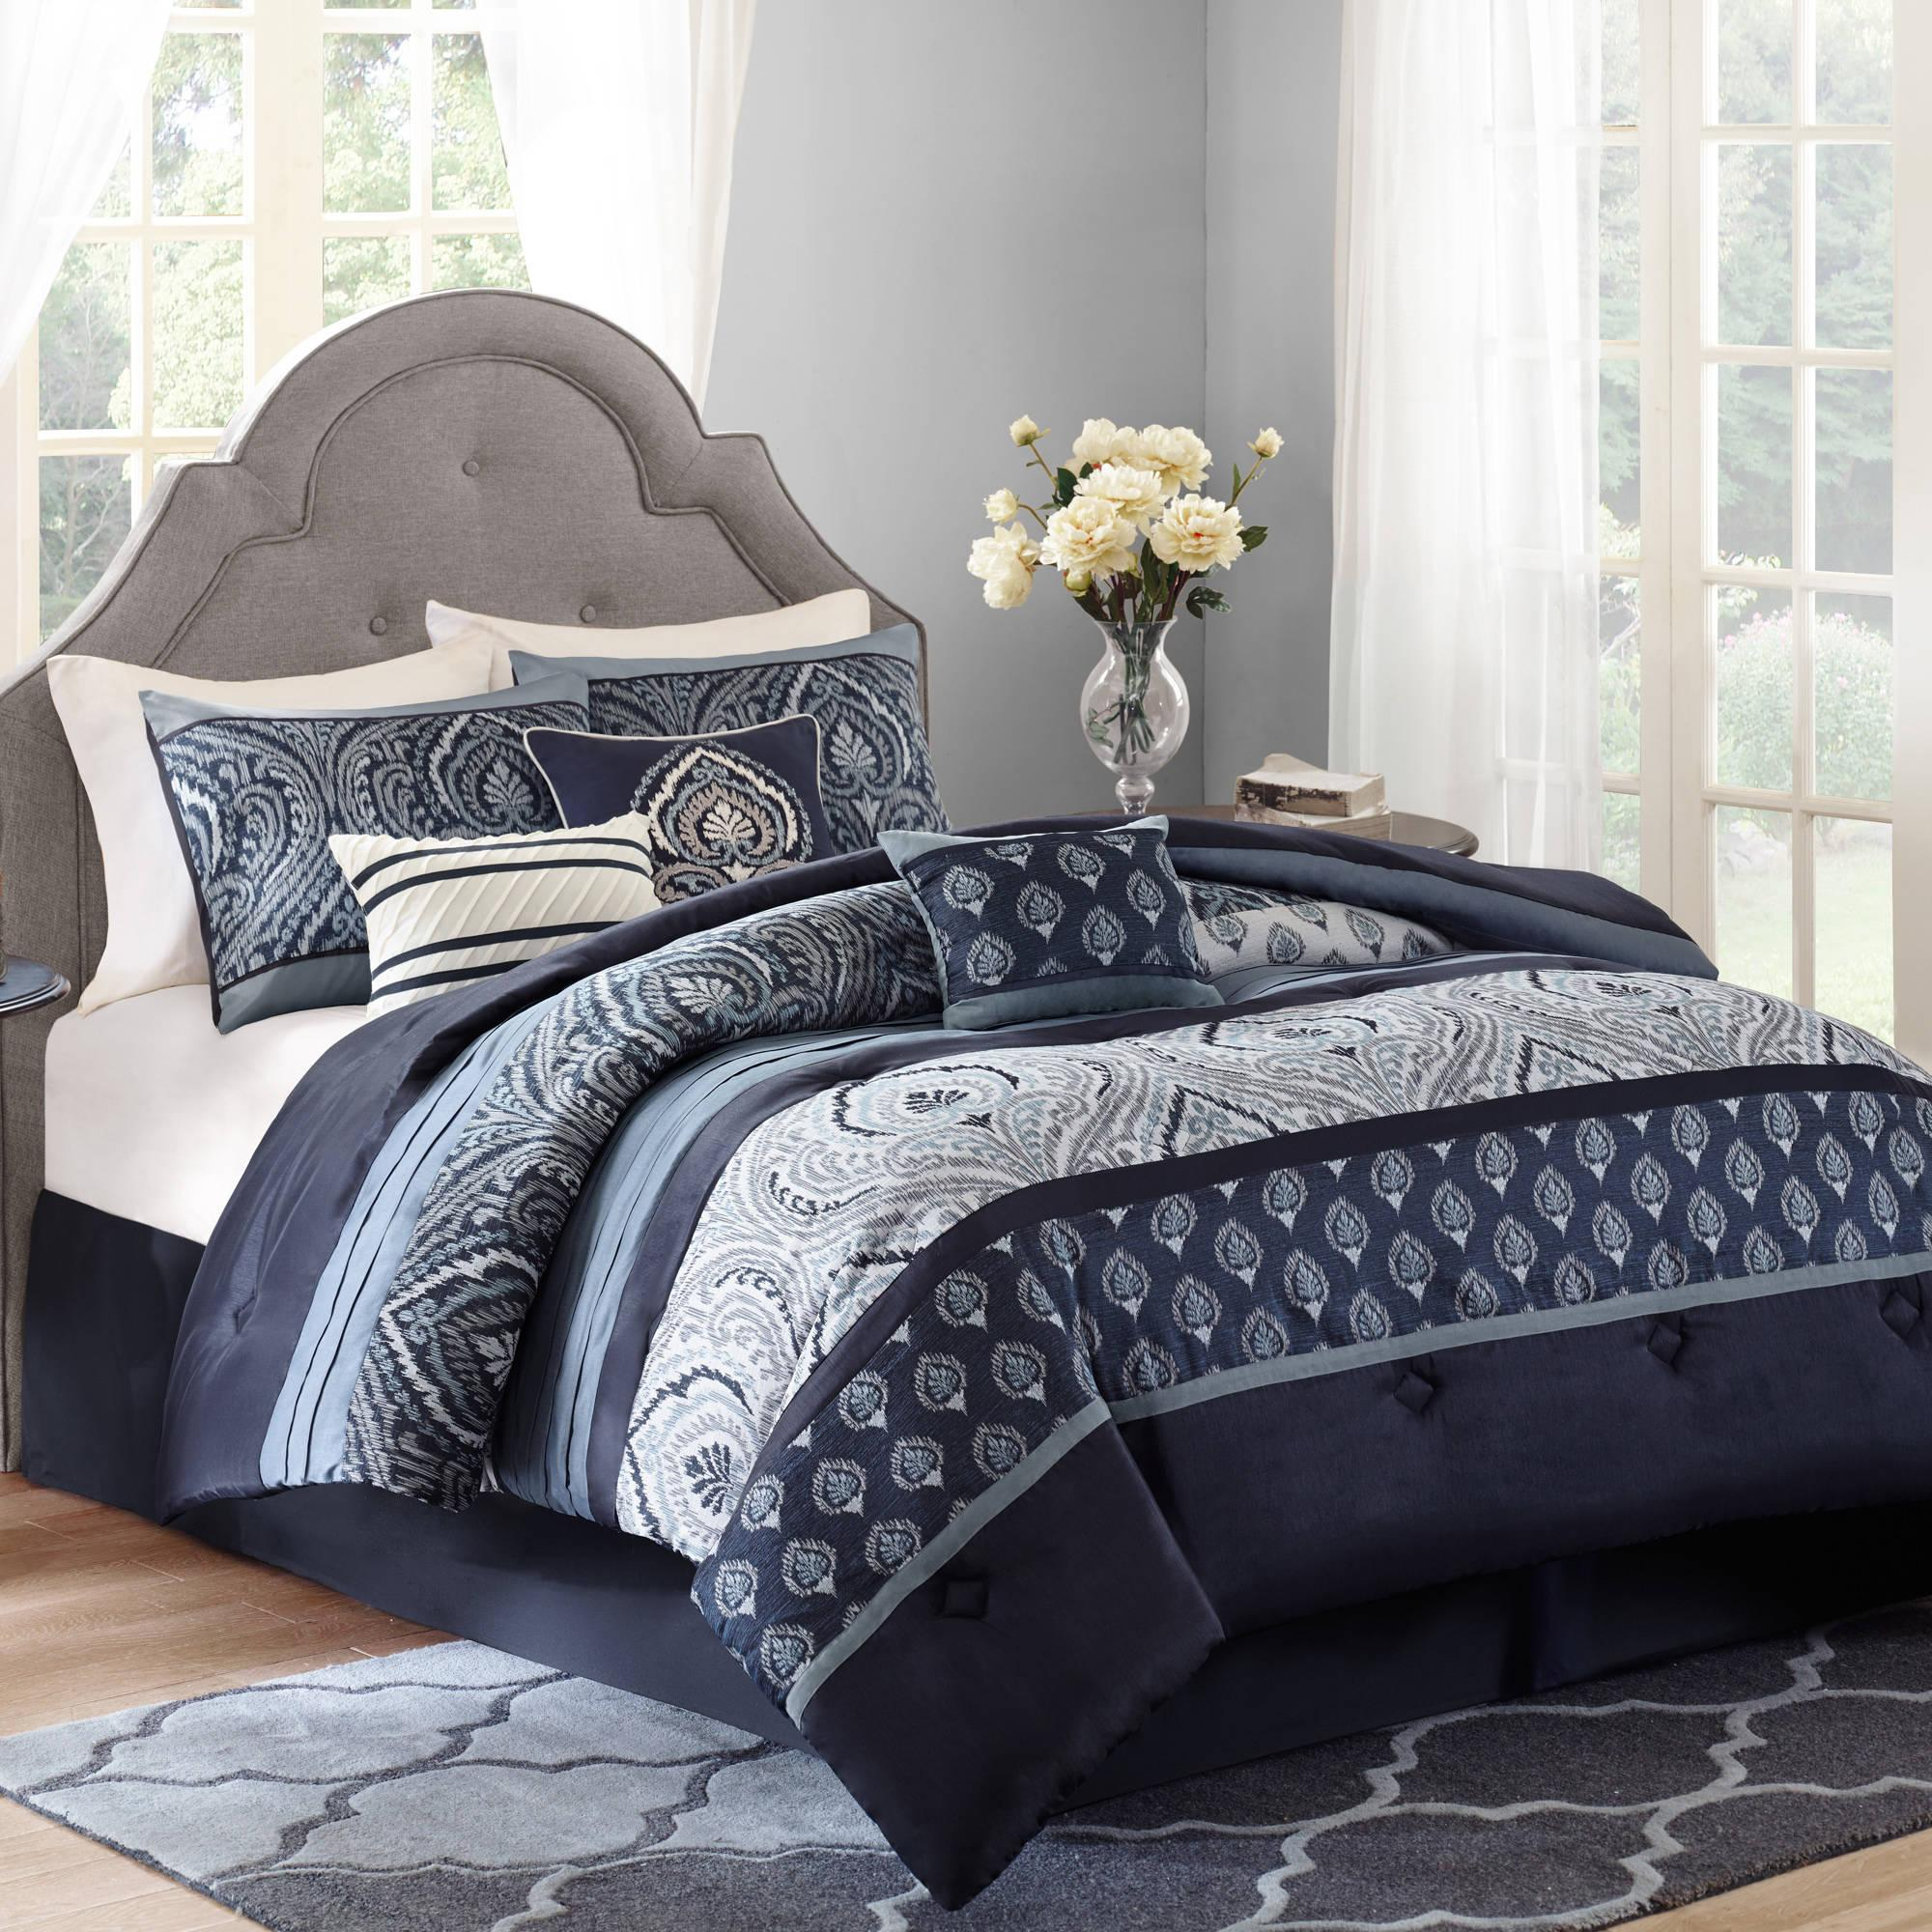 Better Homes and Garden Comforter Sets - HomesFeed